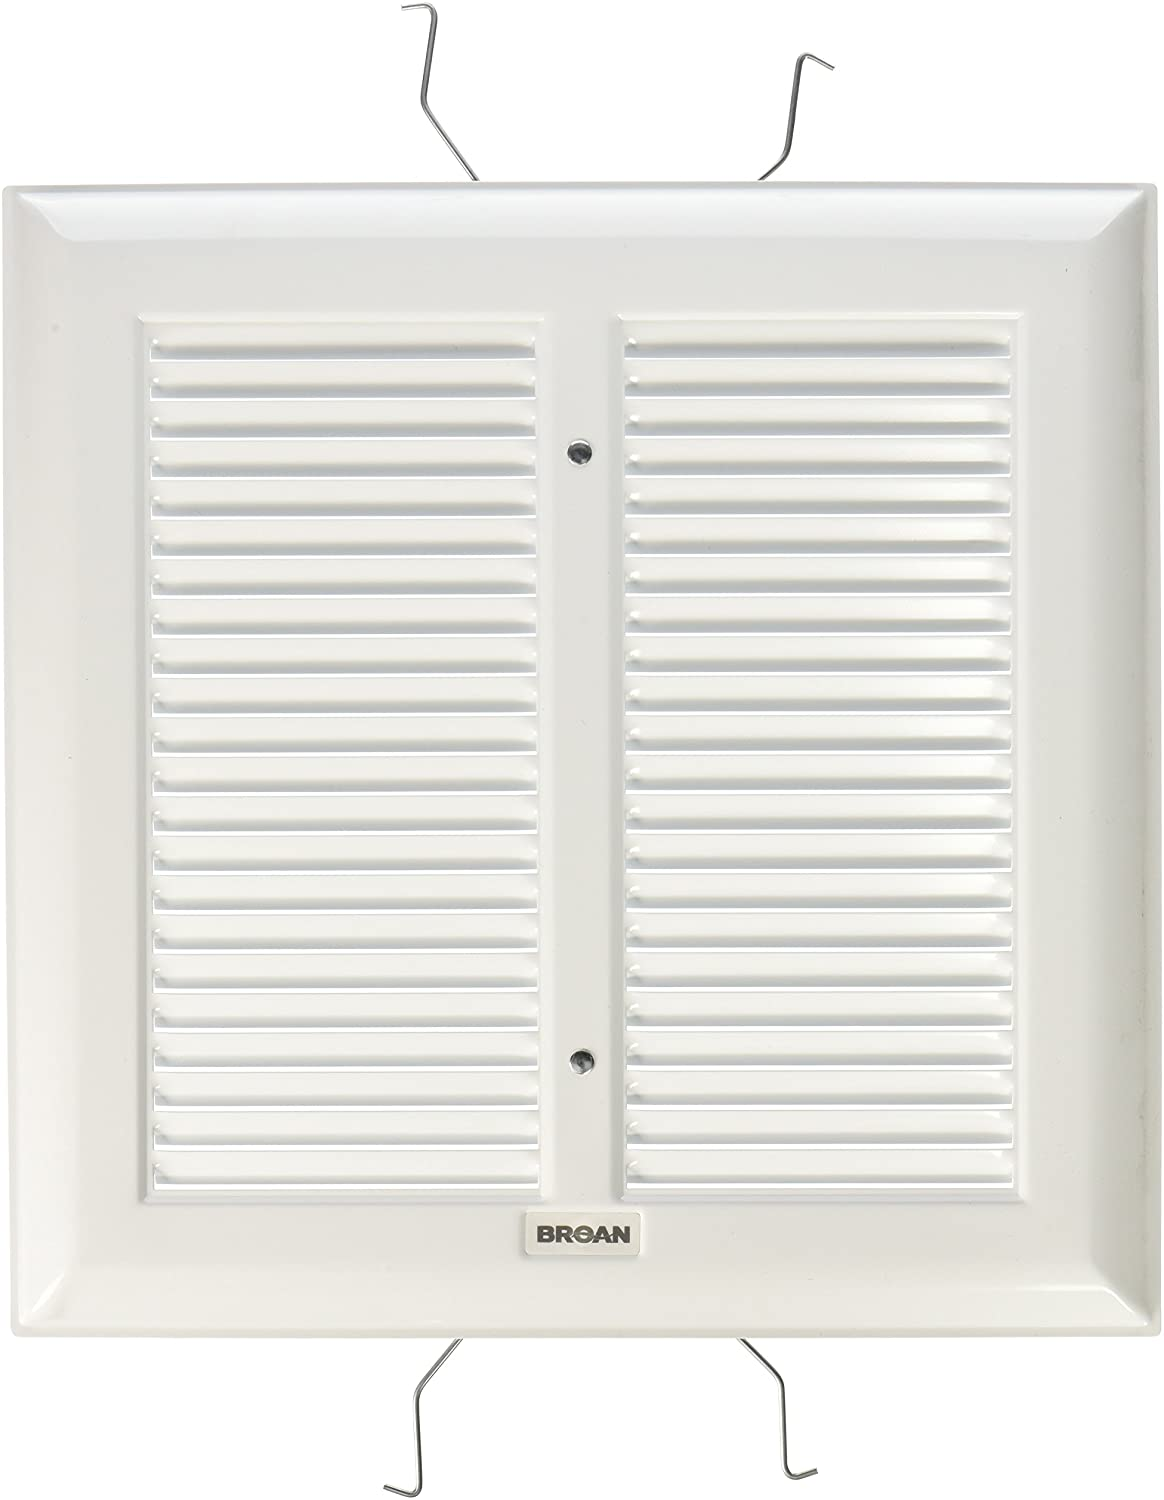 Broan S97011308Spring Mounted Bathroom Fan Cover/Grille Assembly, White